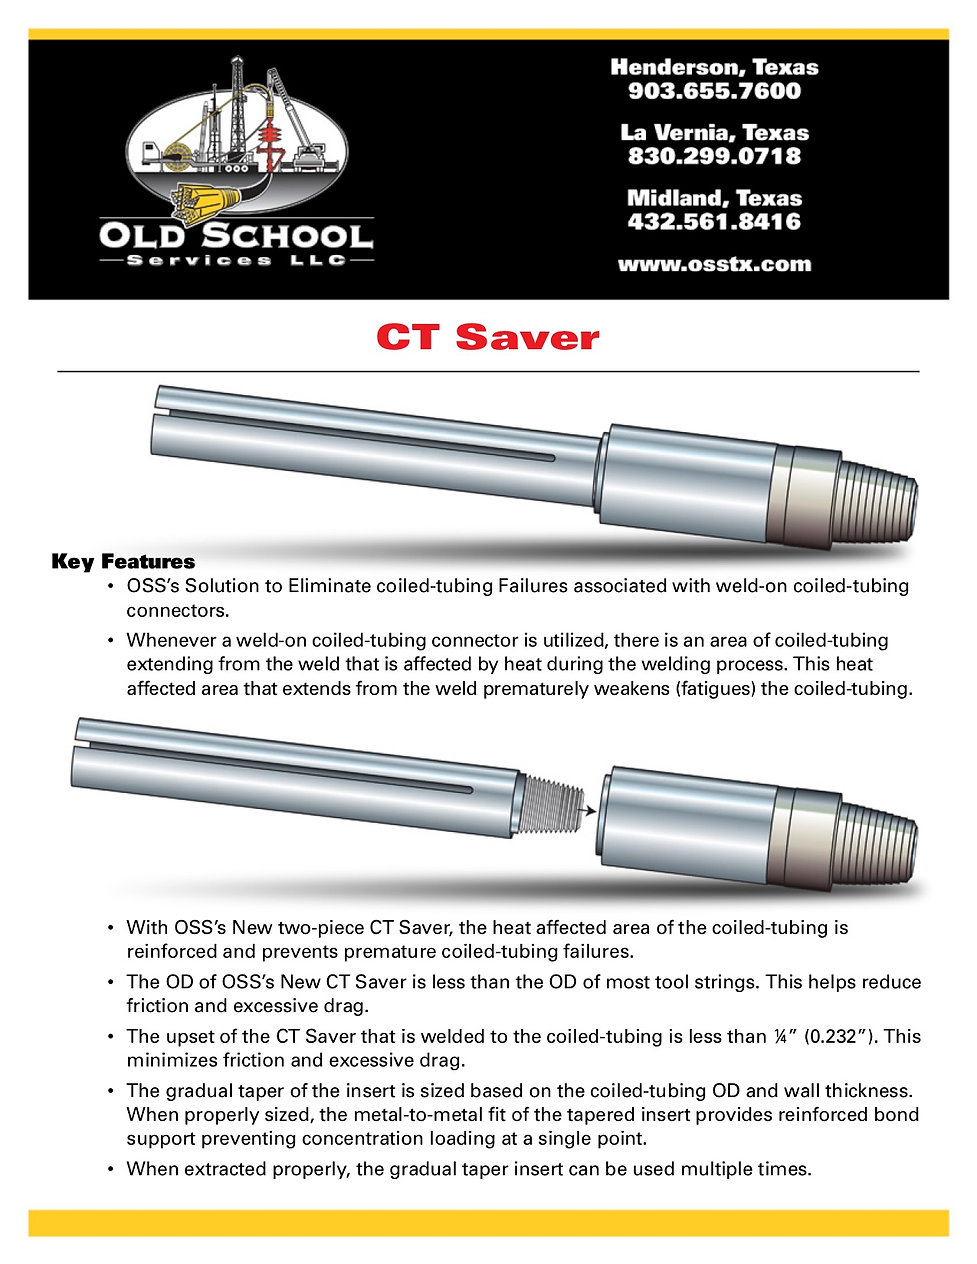 OSS CT Saver Flier.jpg